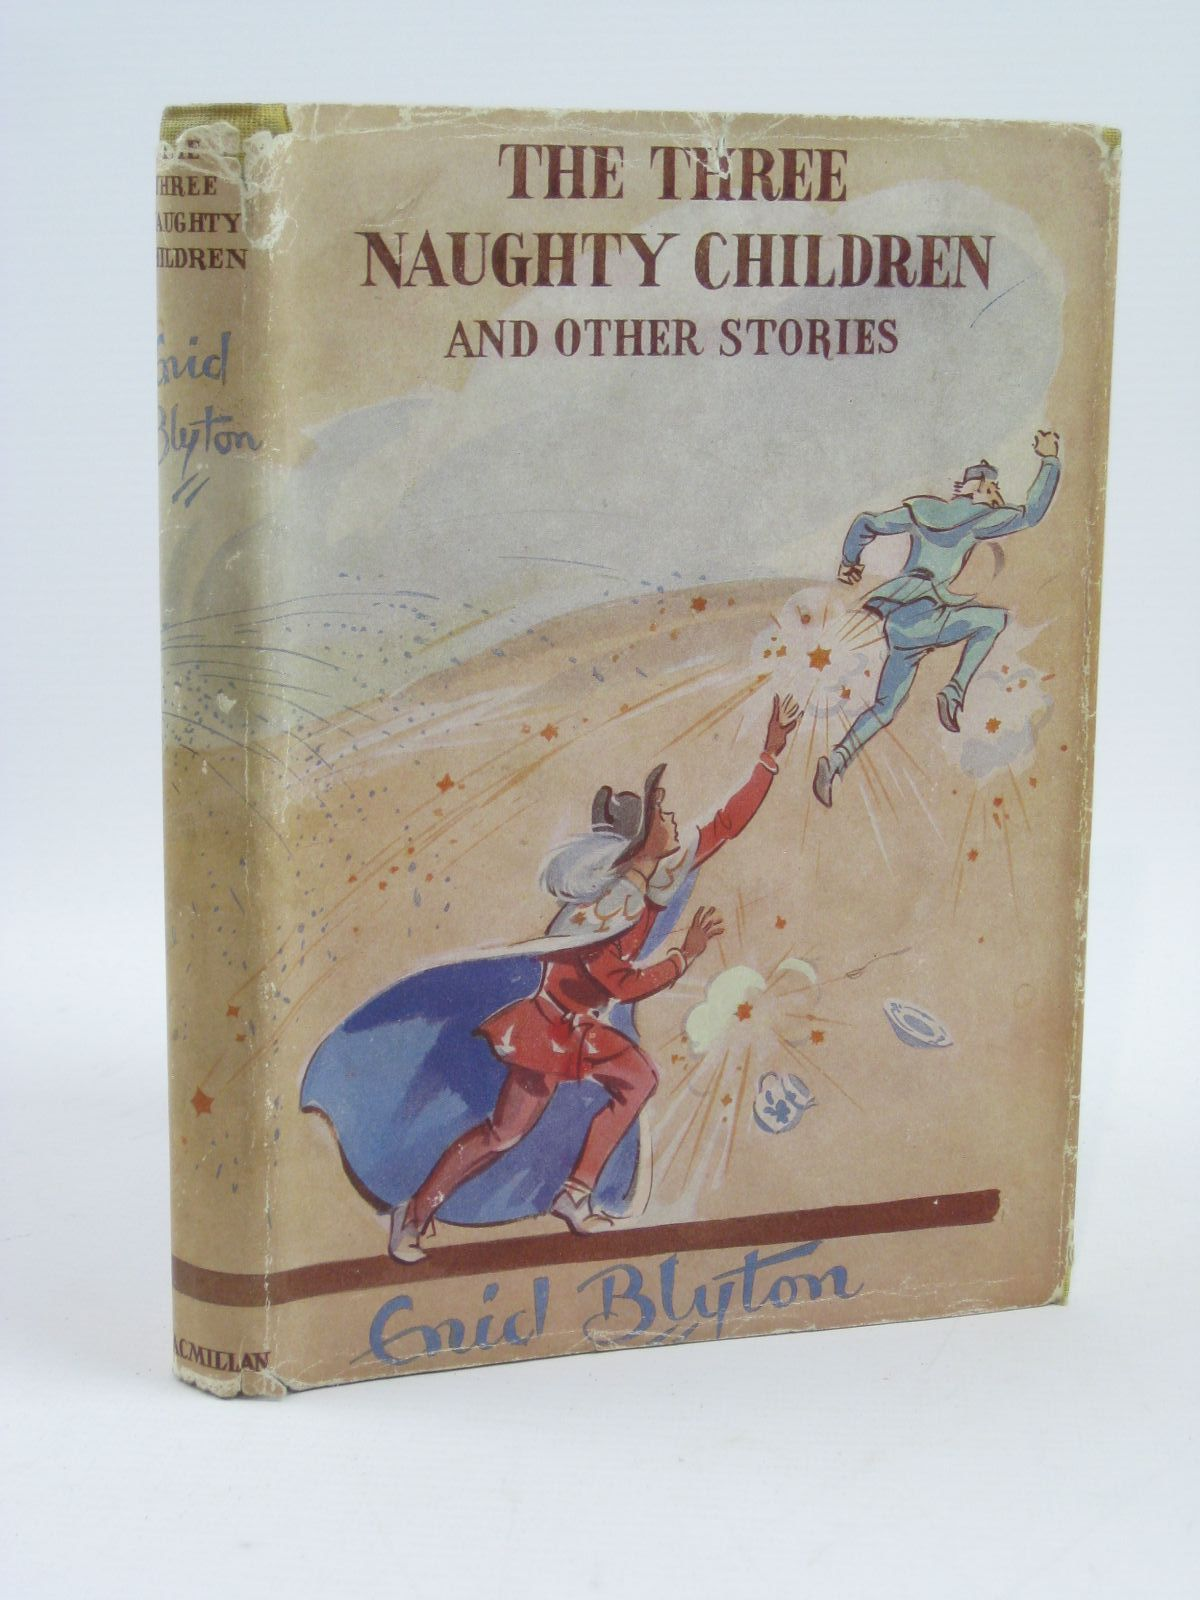 Cover of THE THREE NAUGHTY CHILDREN by Enid Blyton